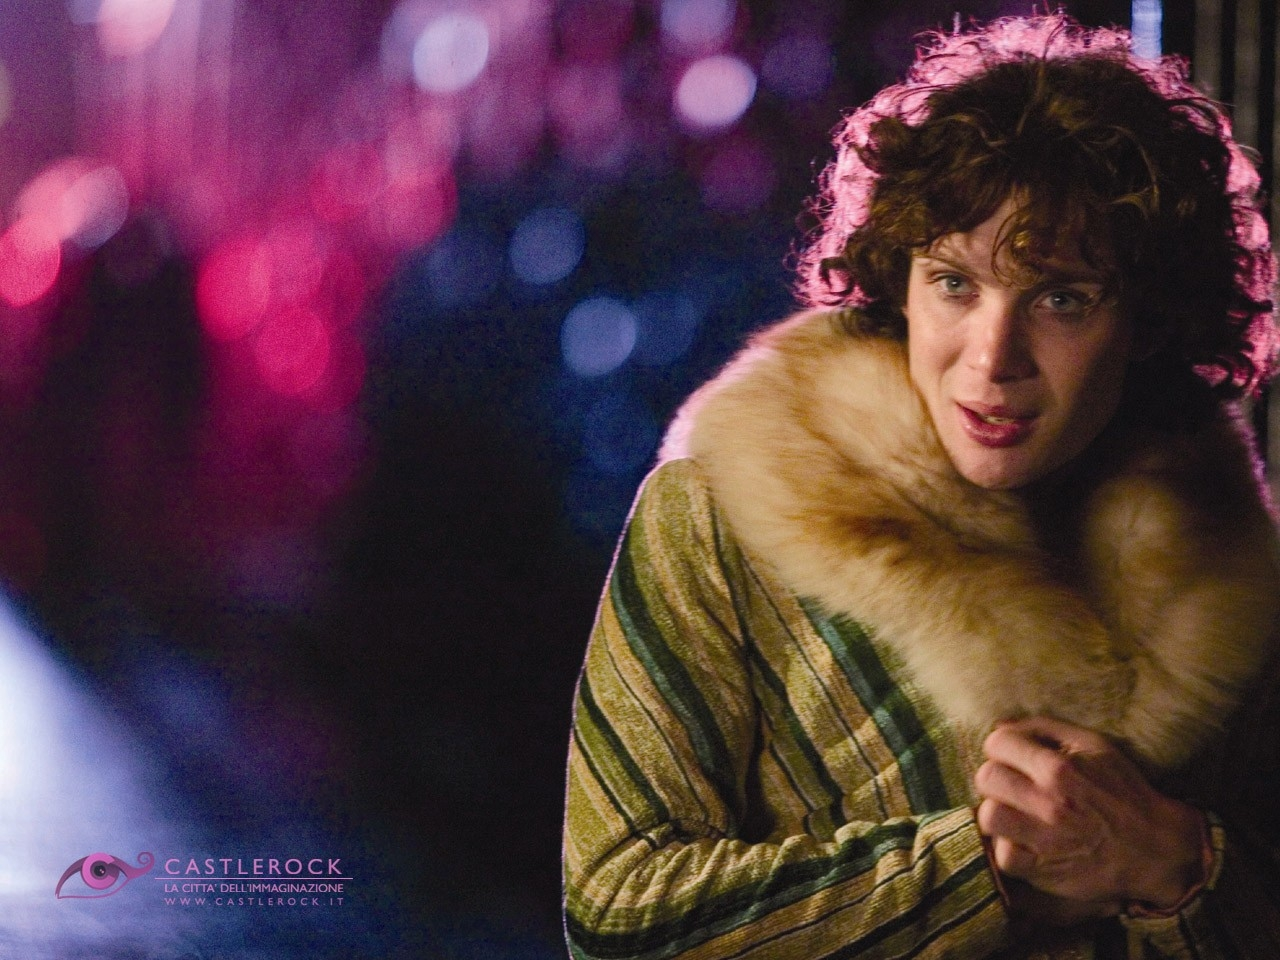 Wallpaper del film Breakfast on Pluto